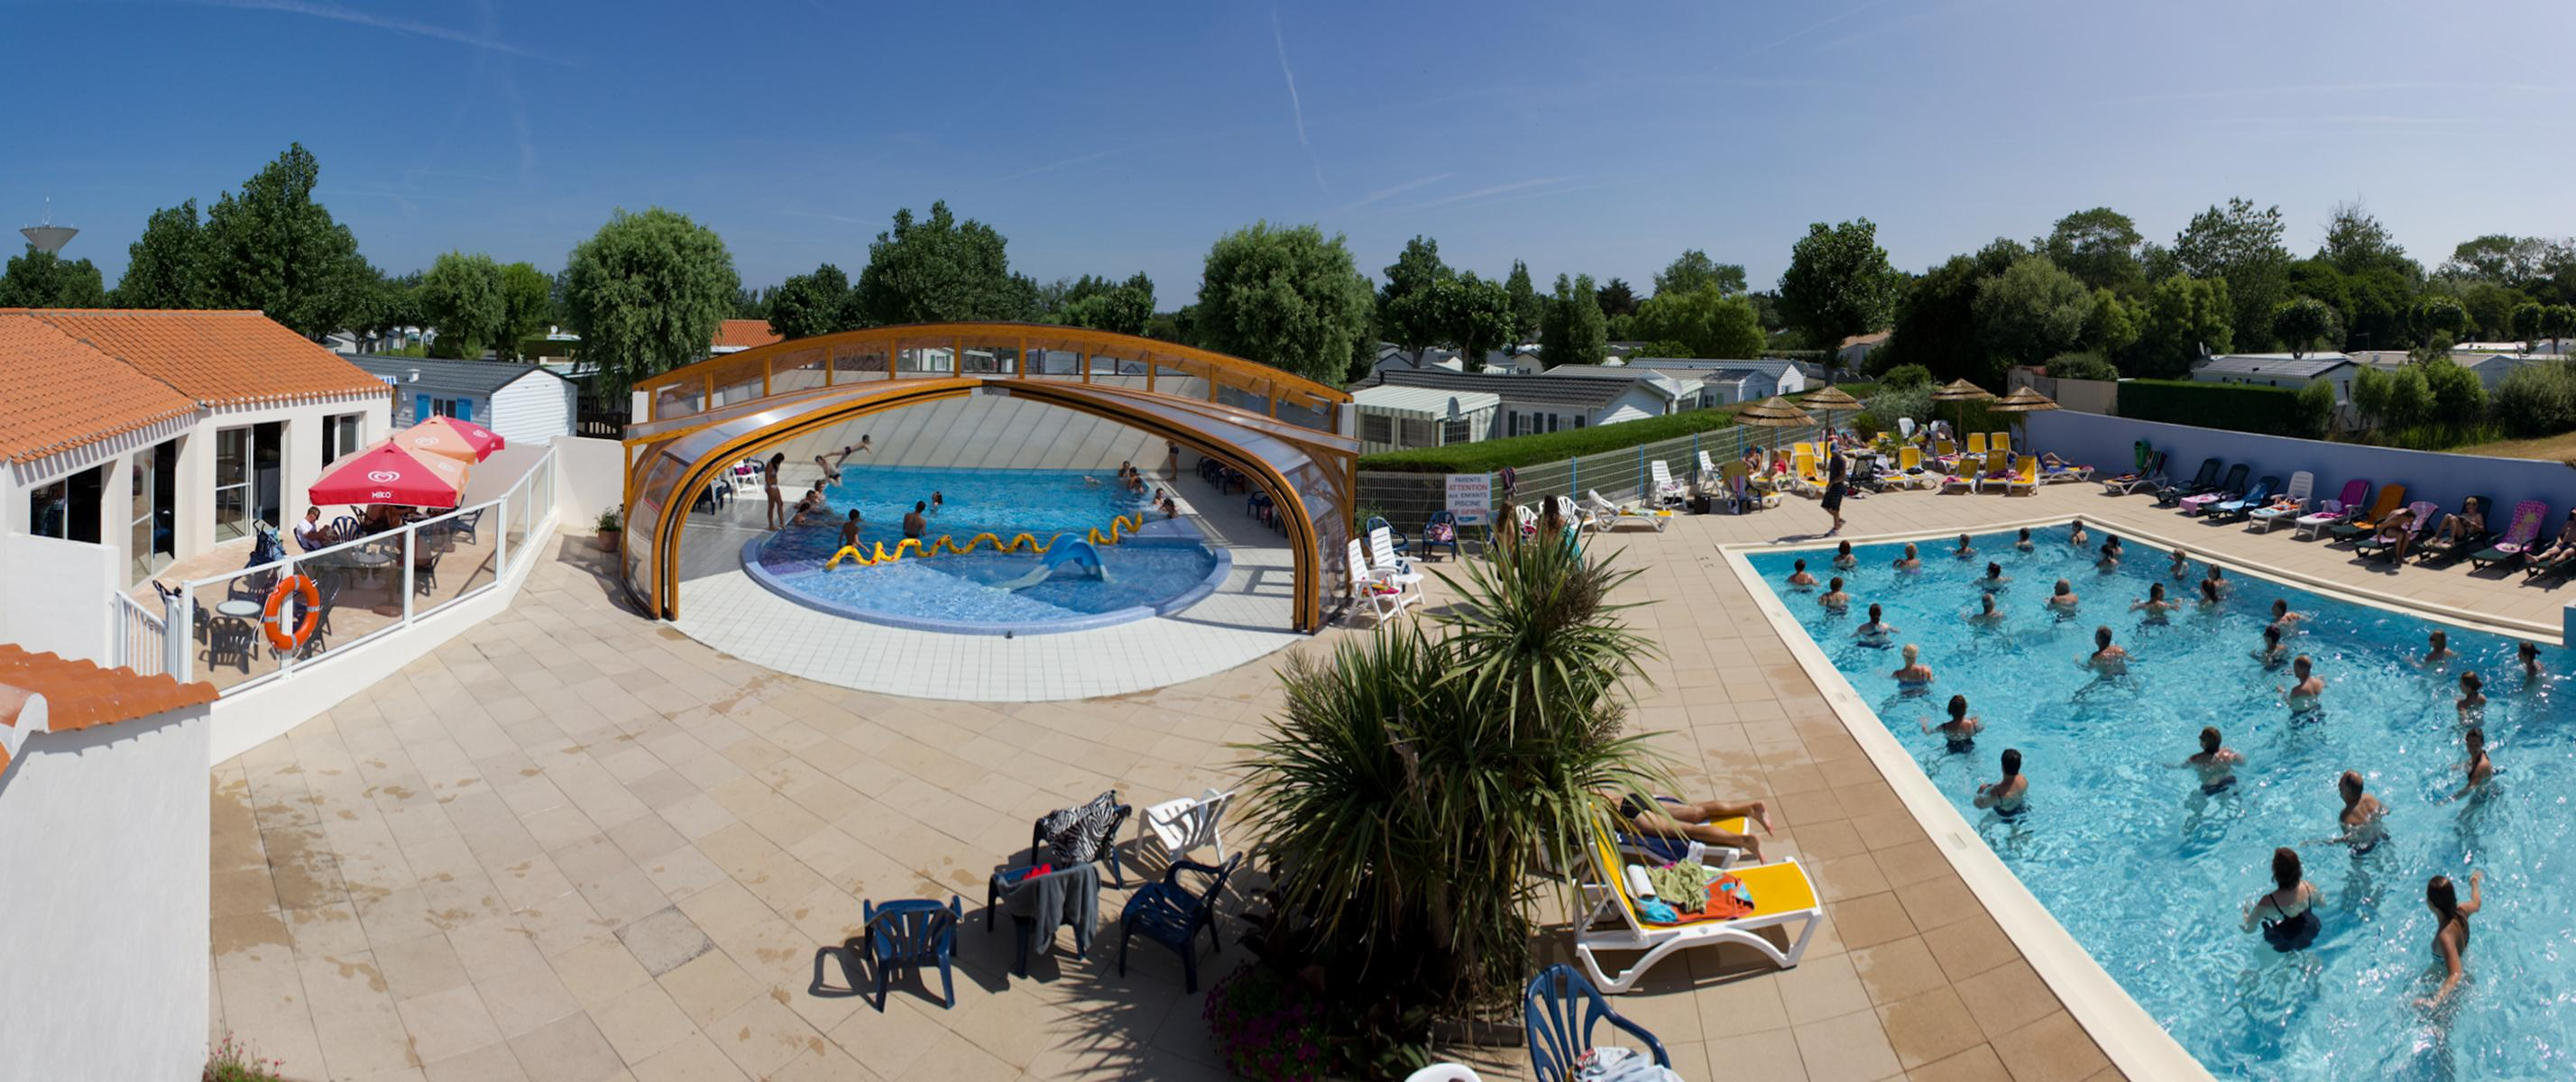 Betrieb Camping La Ningle - Saint Hilaire De Riez